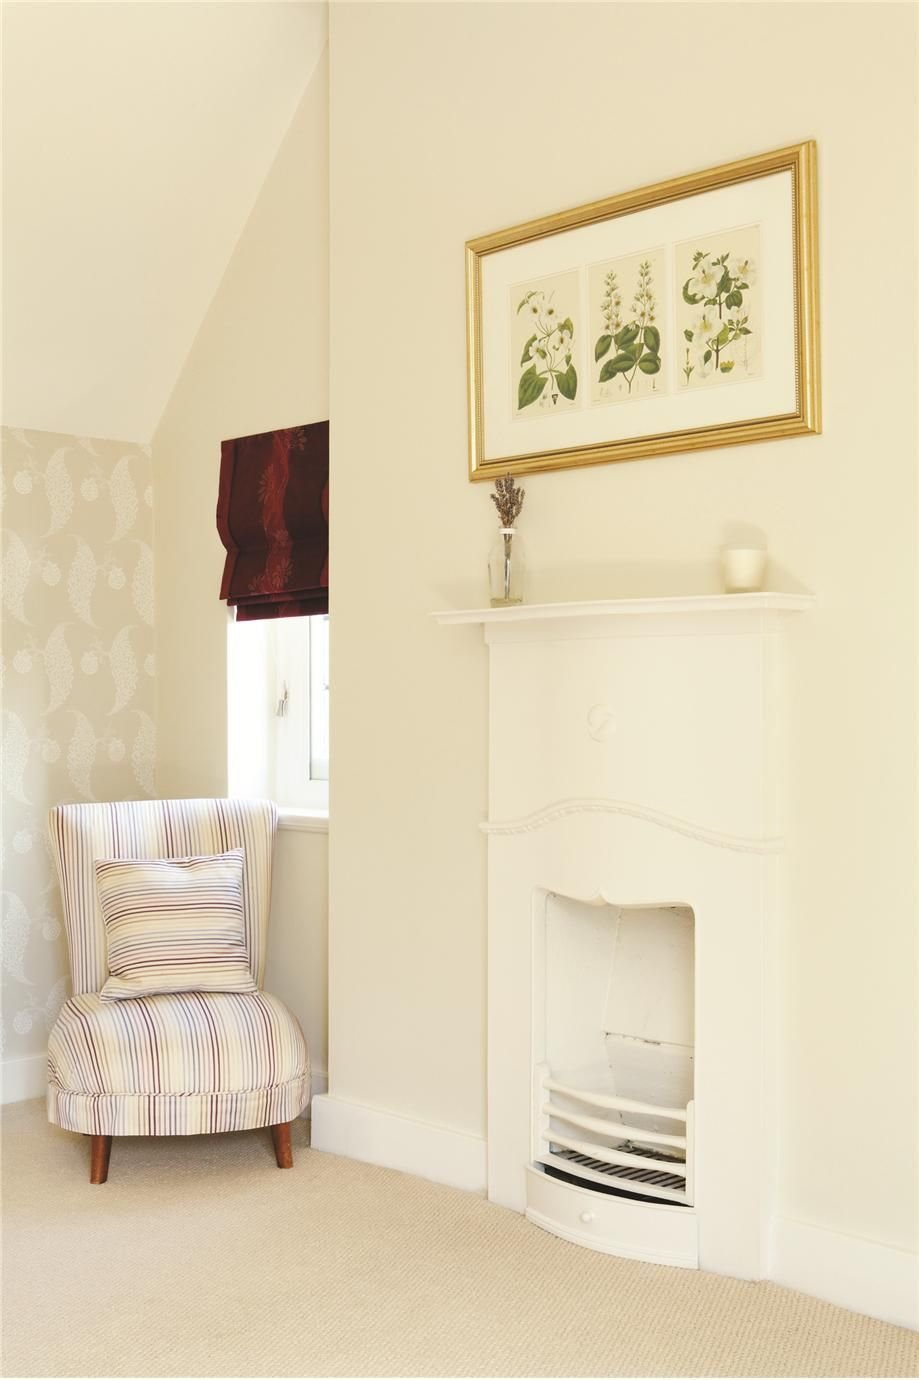 Best Farrow And Ball White Tie Closest To Benjamin Moore Ivory With Pictures